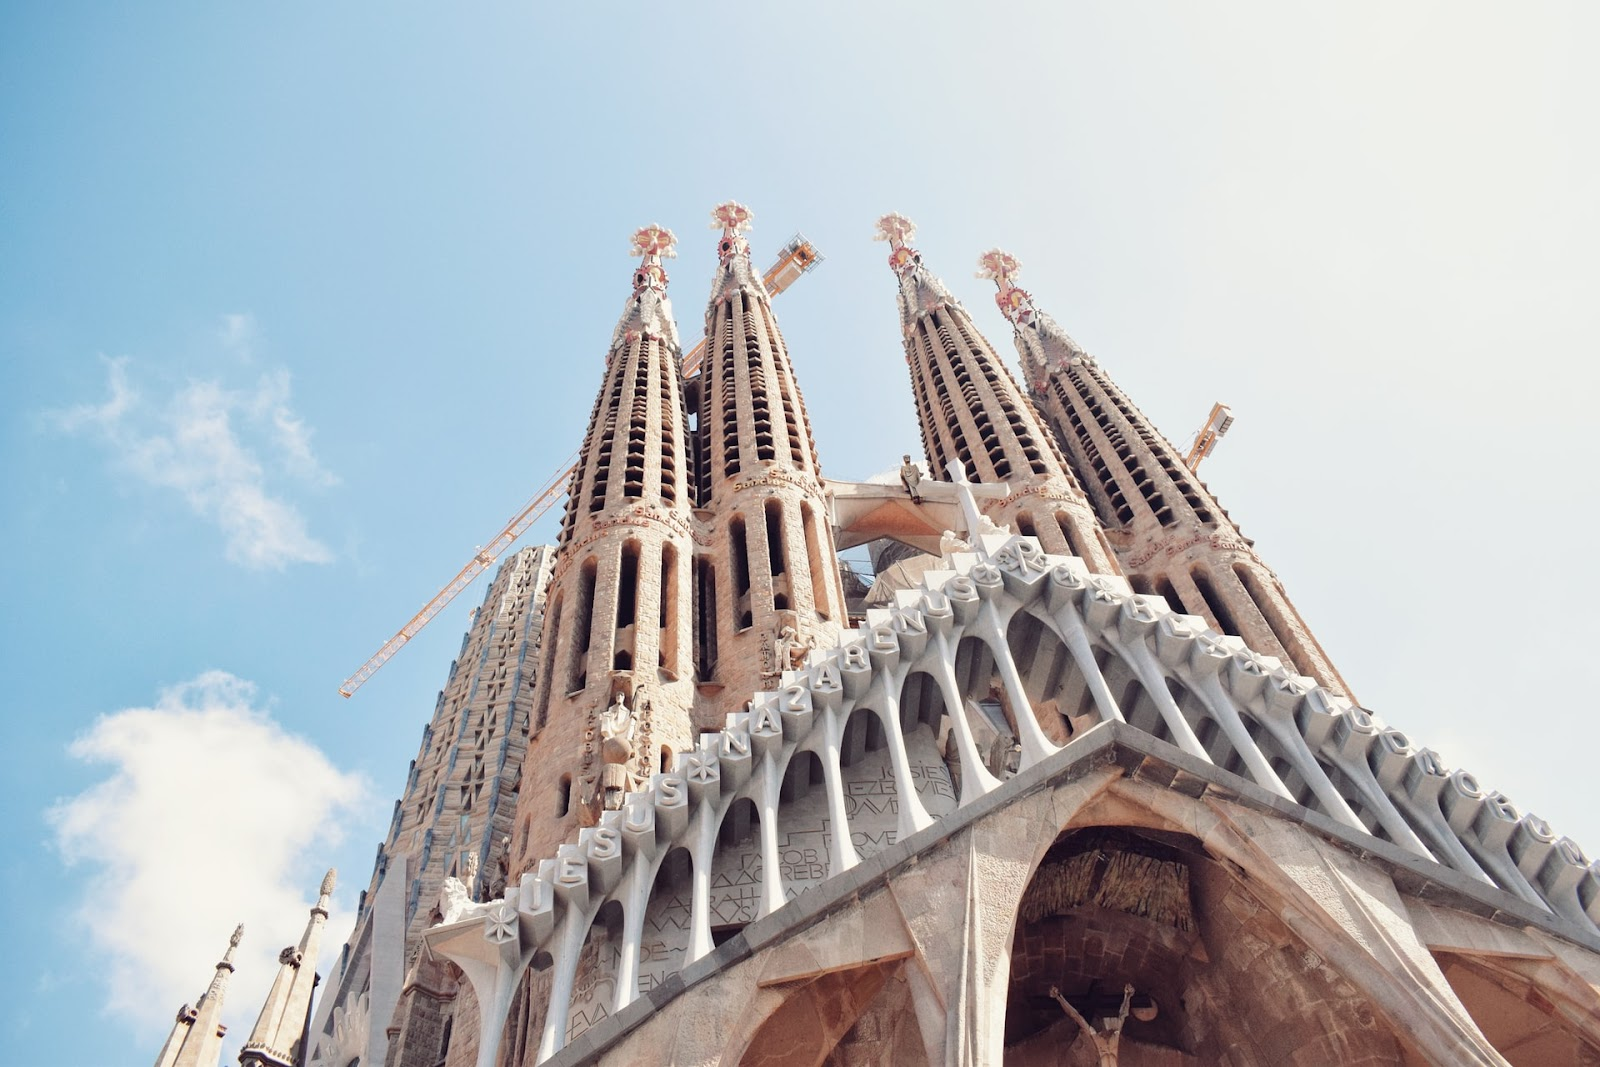 Towers of Sagrada Familia